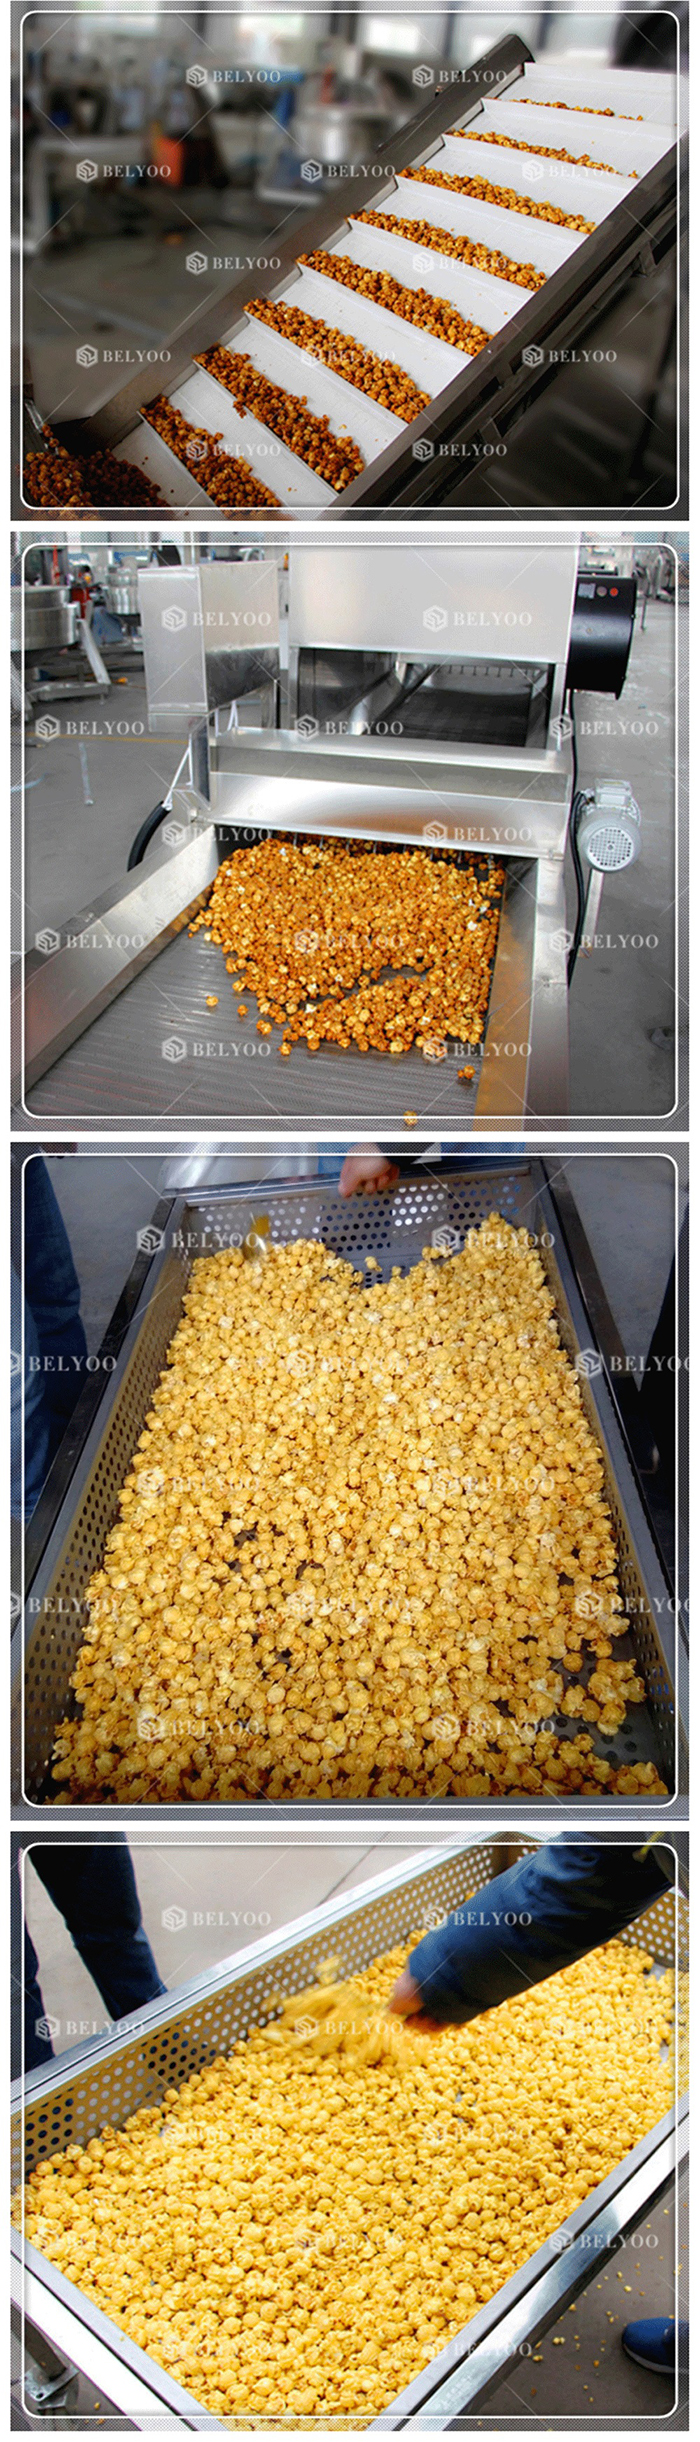 Fully automatic strawberry chocolate corn commercial popcorn maker processing machines puffing gas popcorn making machine